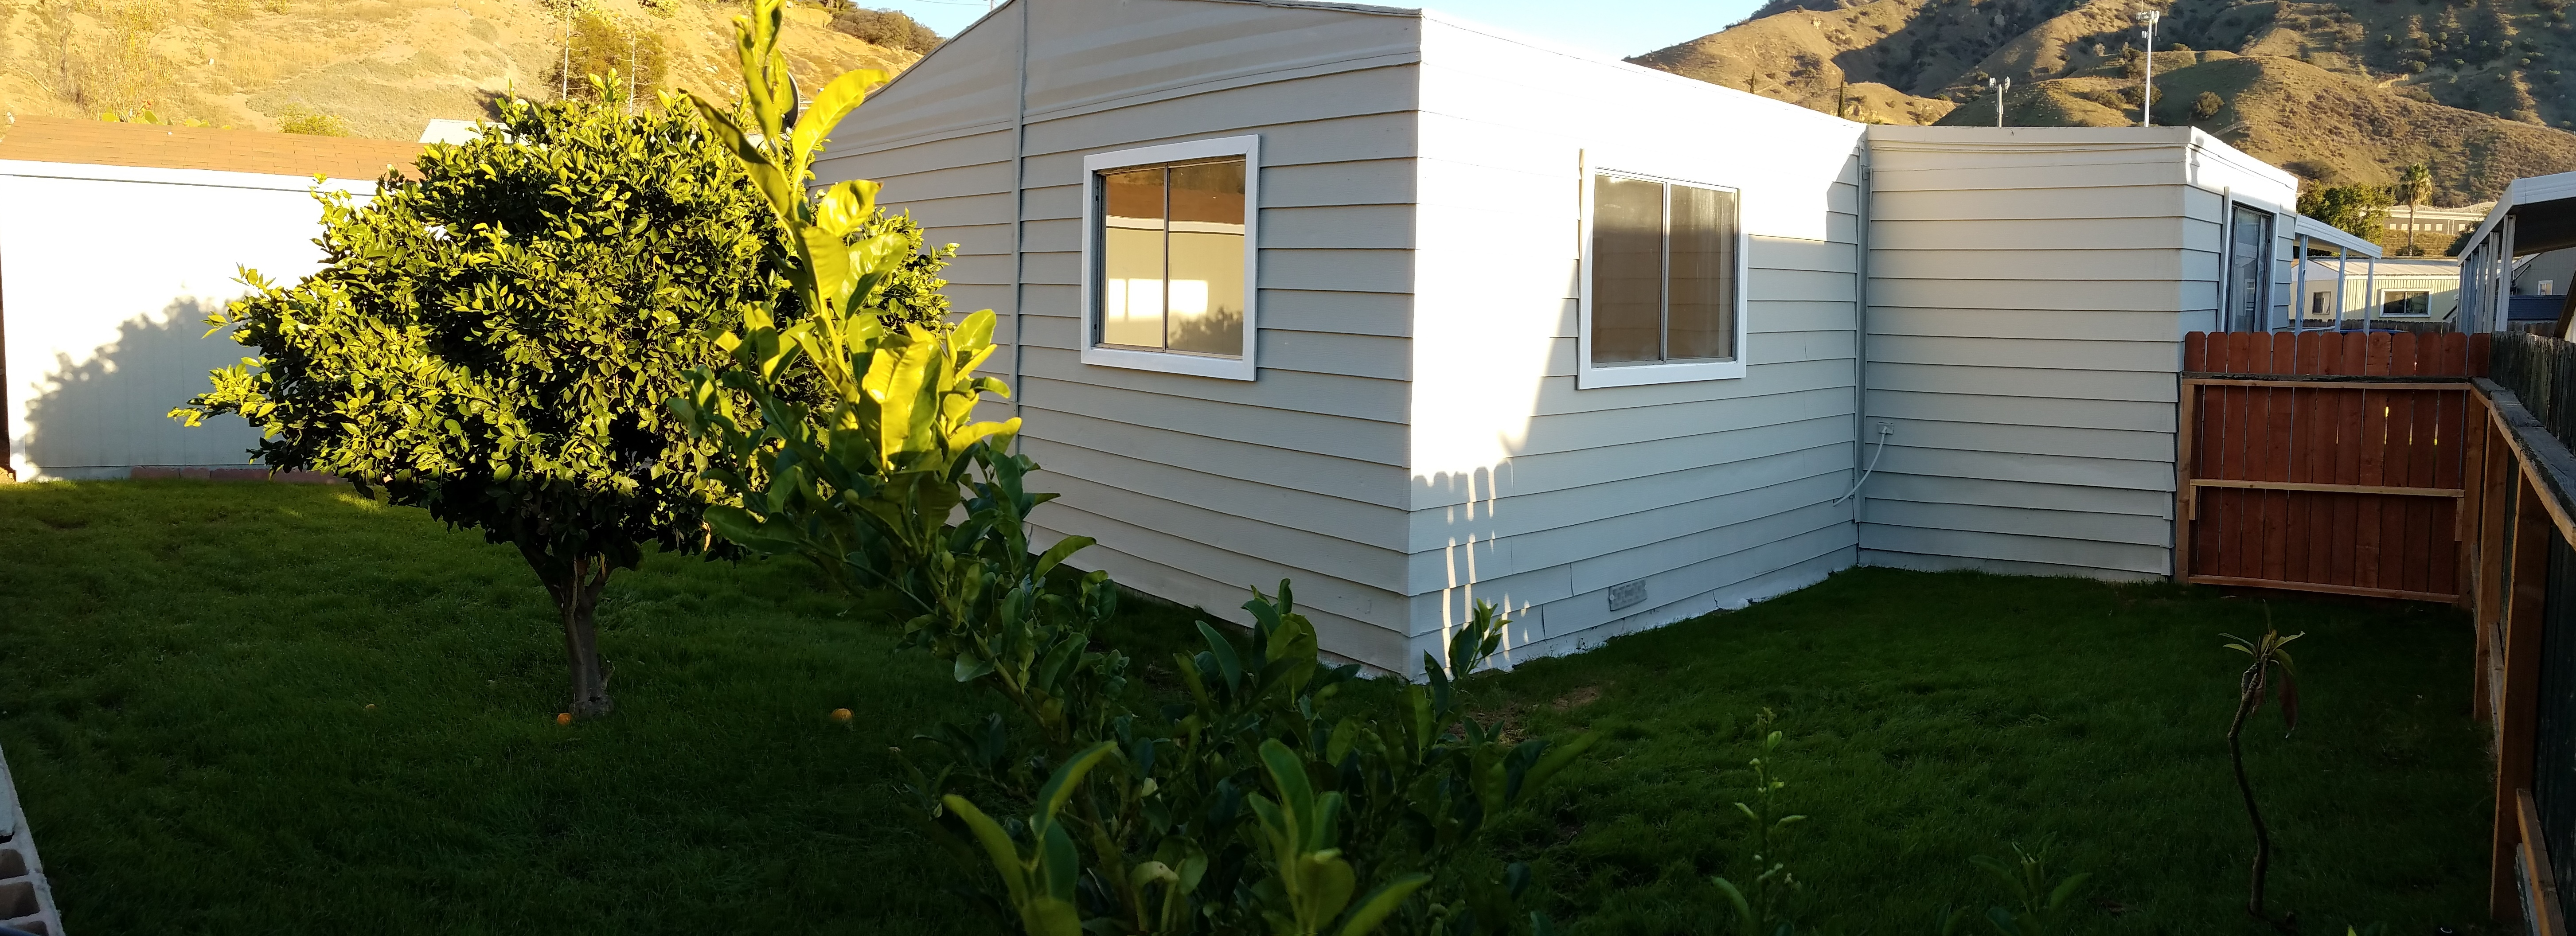 Mobile homes for sale in Orange County, CA - 2020MobileHomes.com